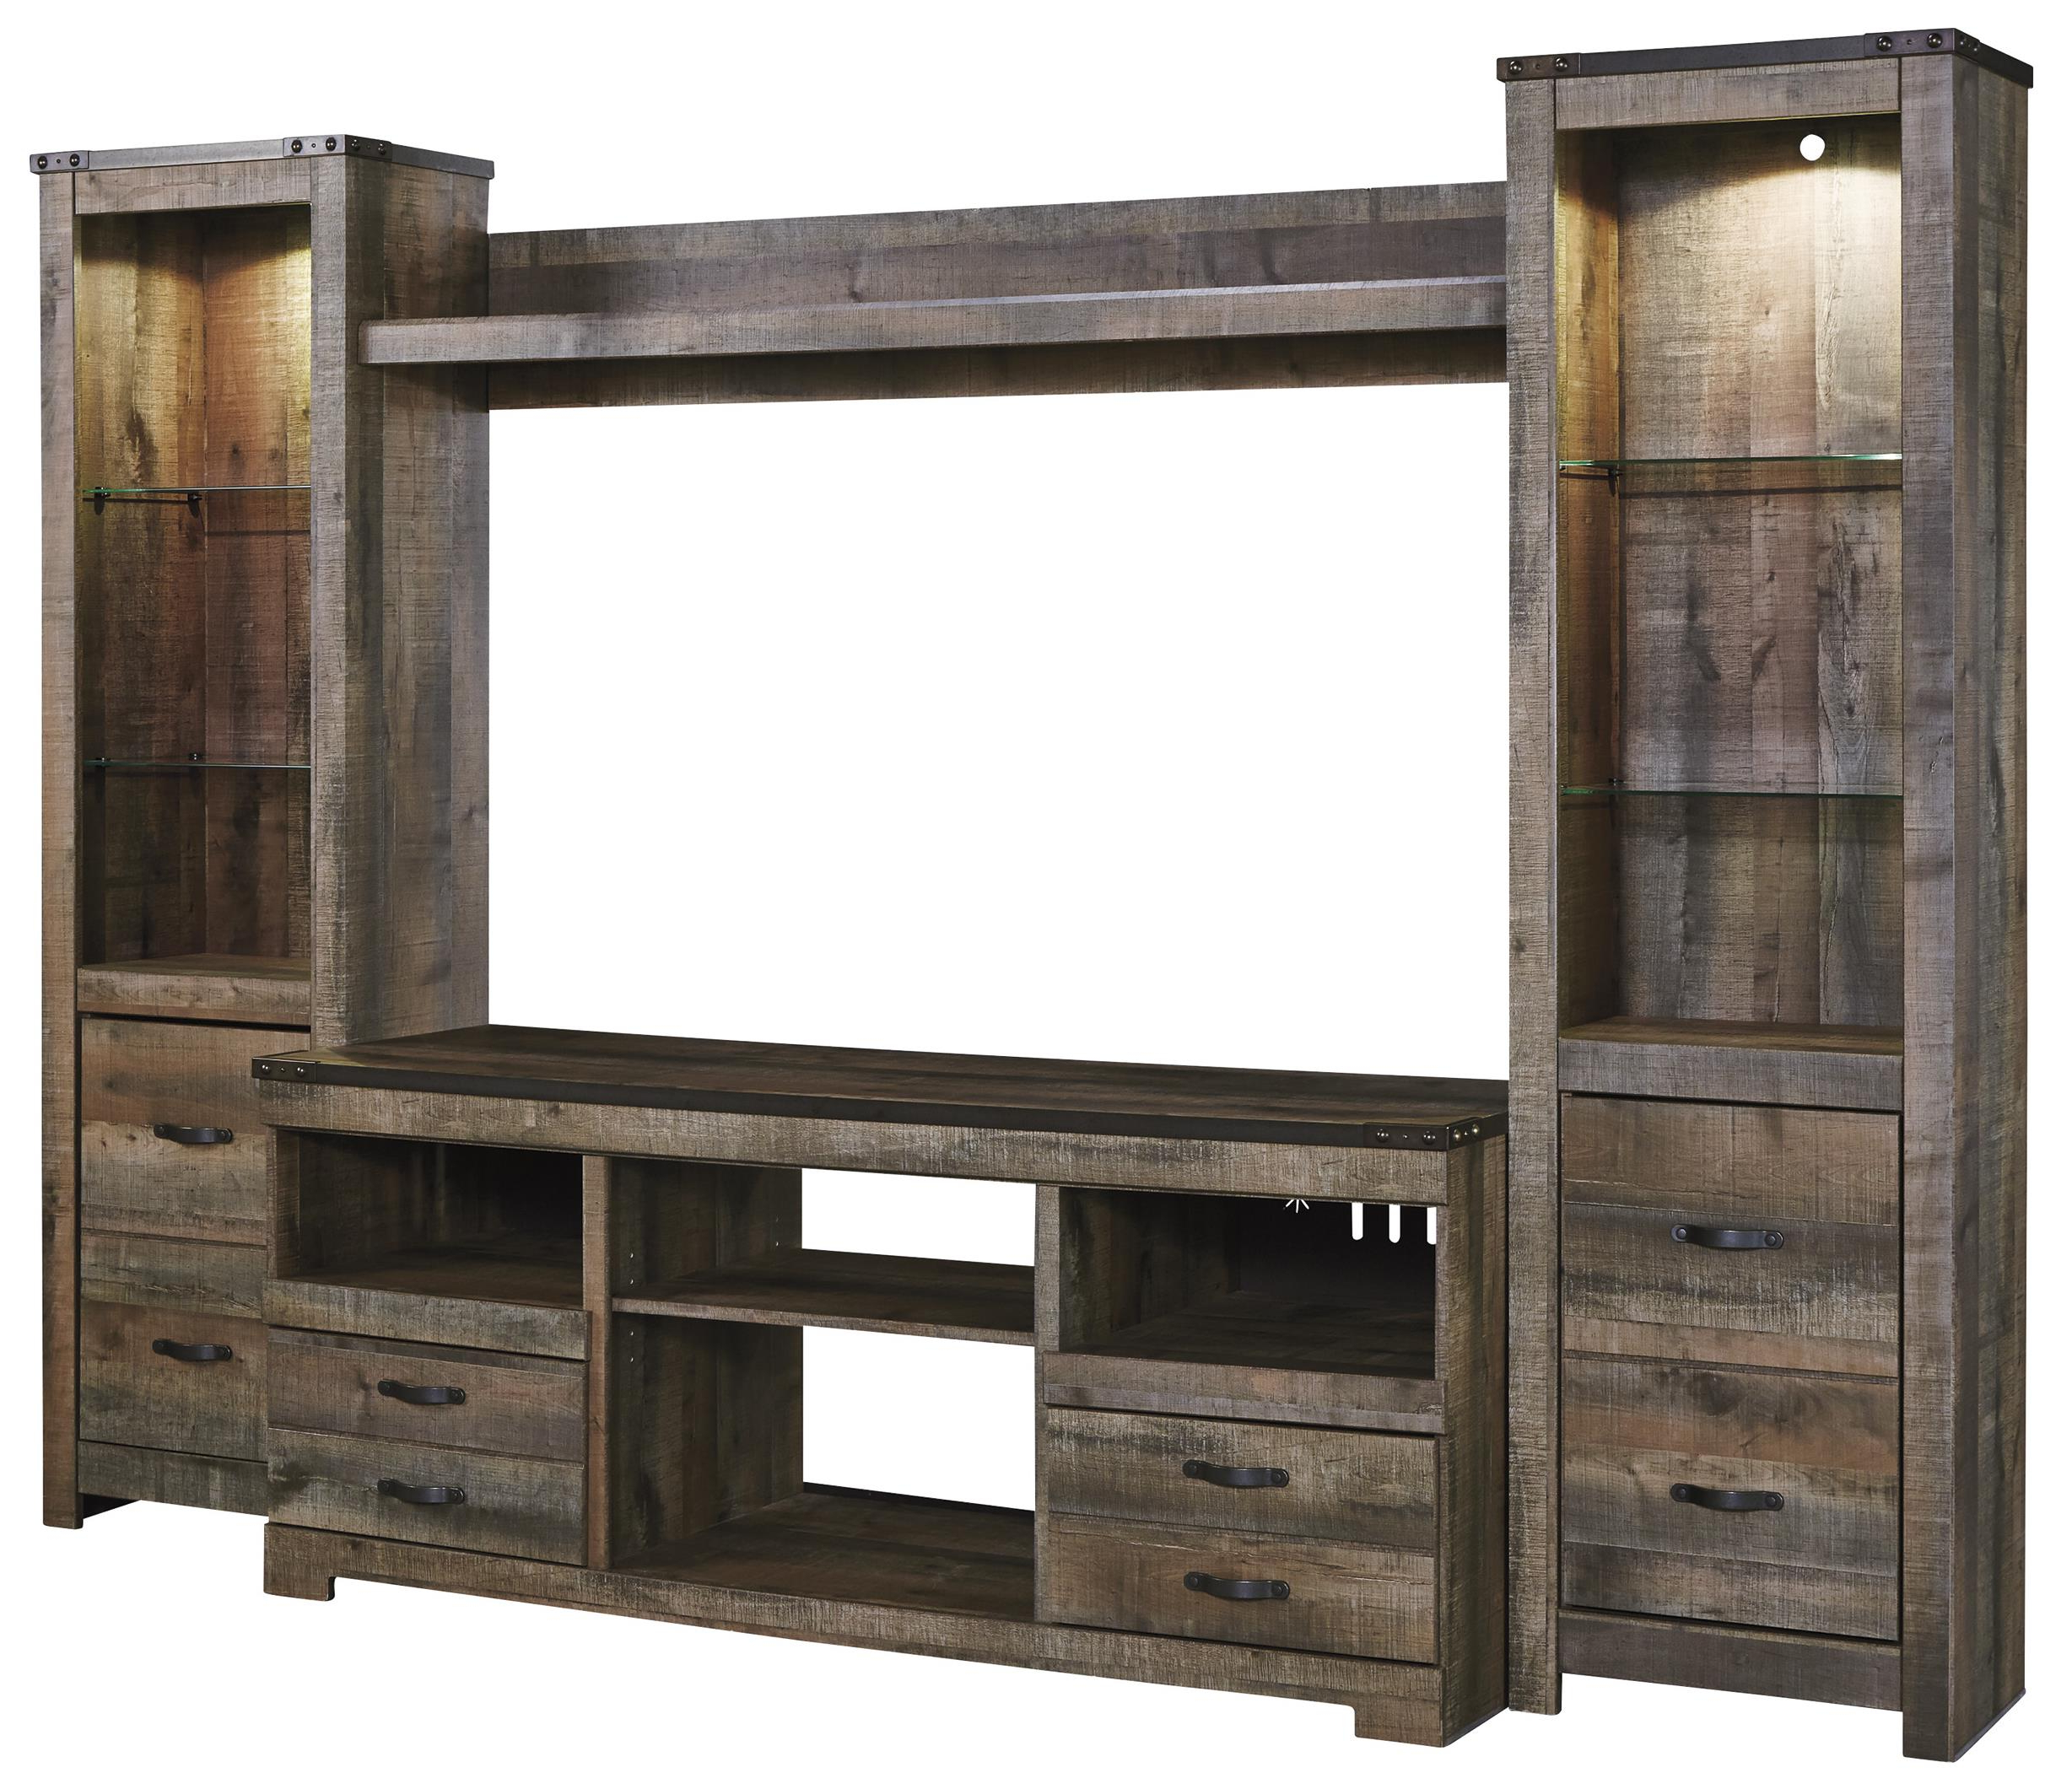 Tv Entertainment Unit Regarding Well Known Urban Rustic Rustic Large Tv Stand & 2 Tall Piers W/ Bridge (View 16 of 20)